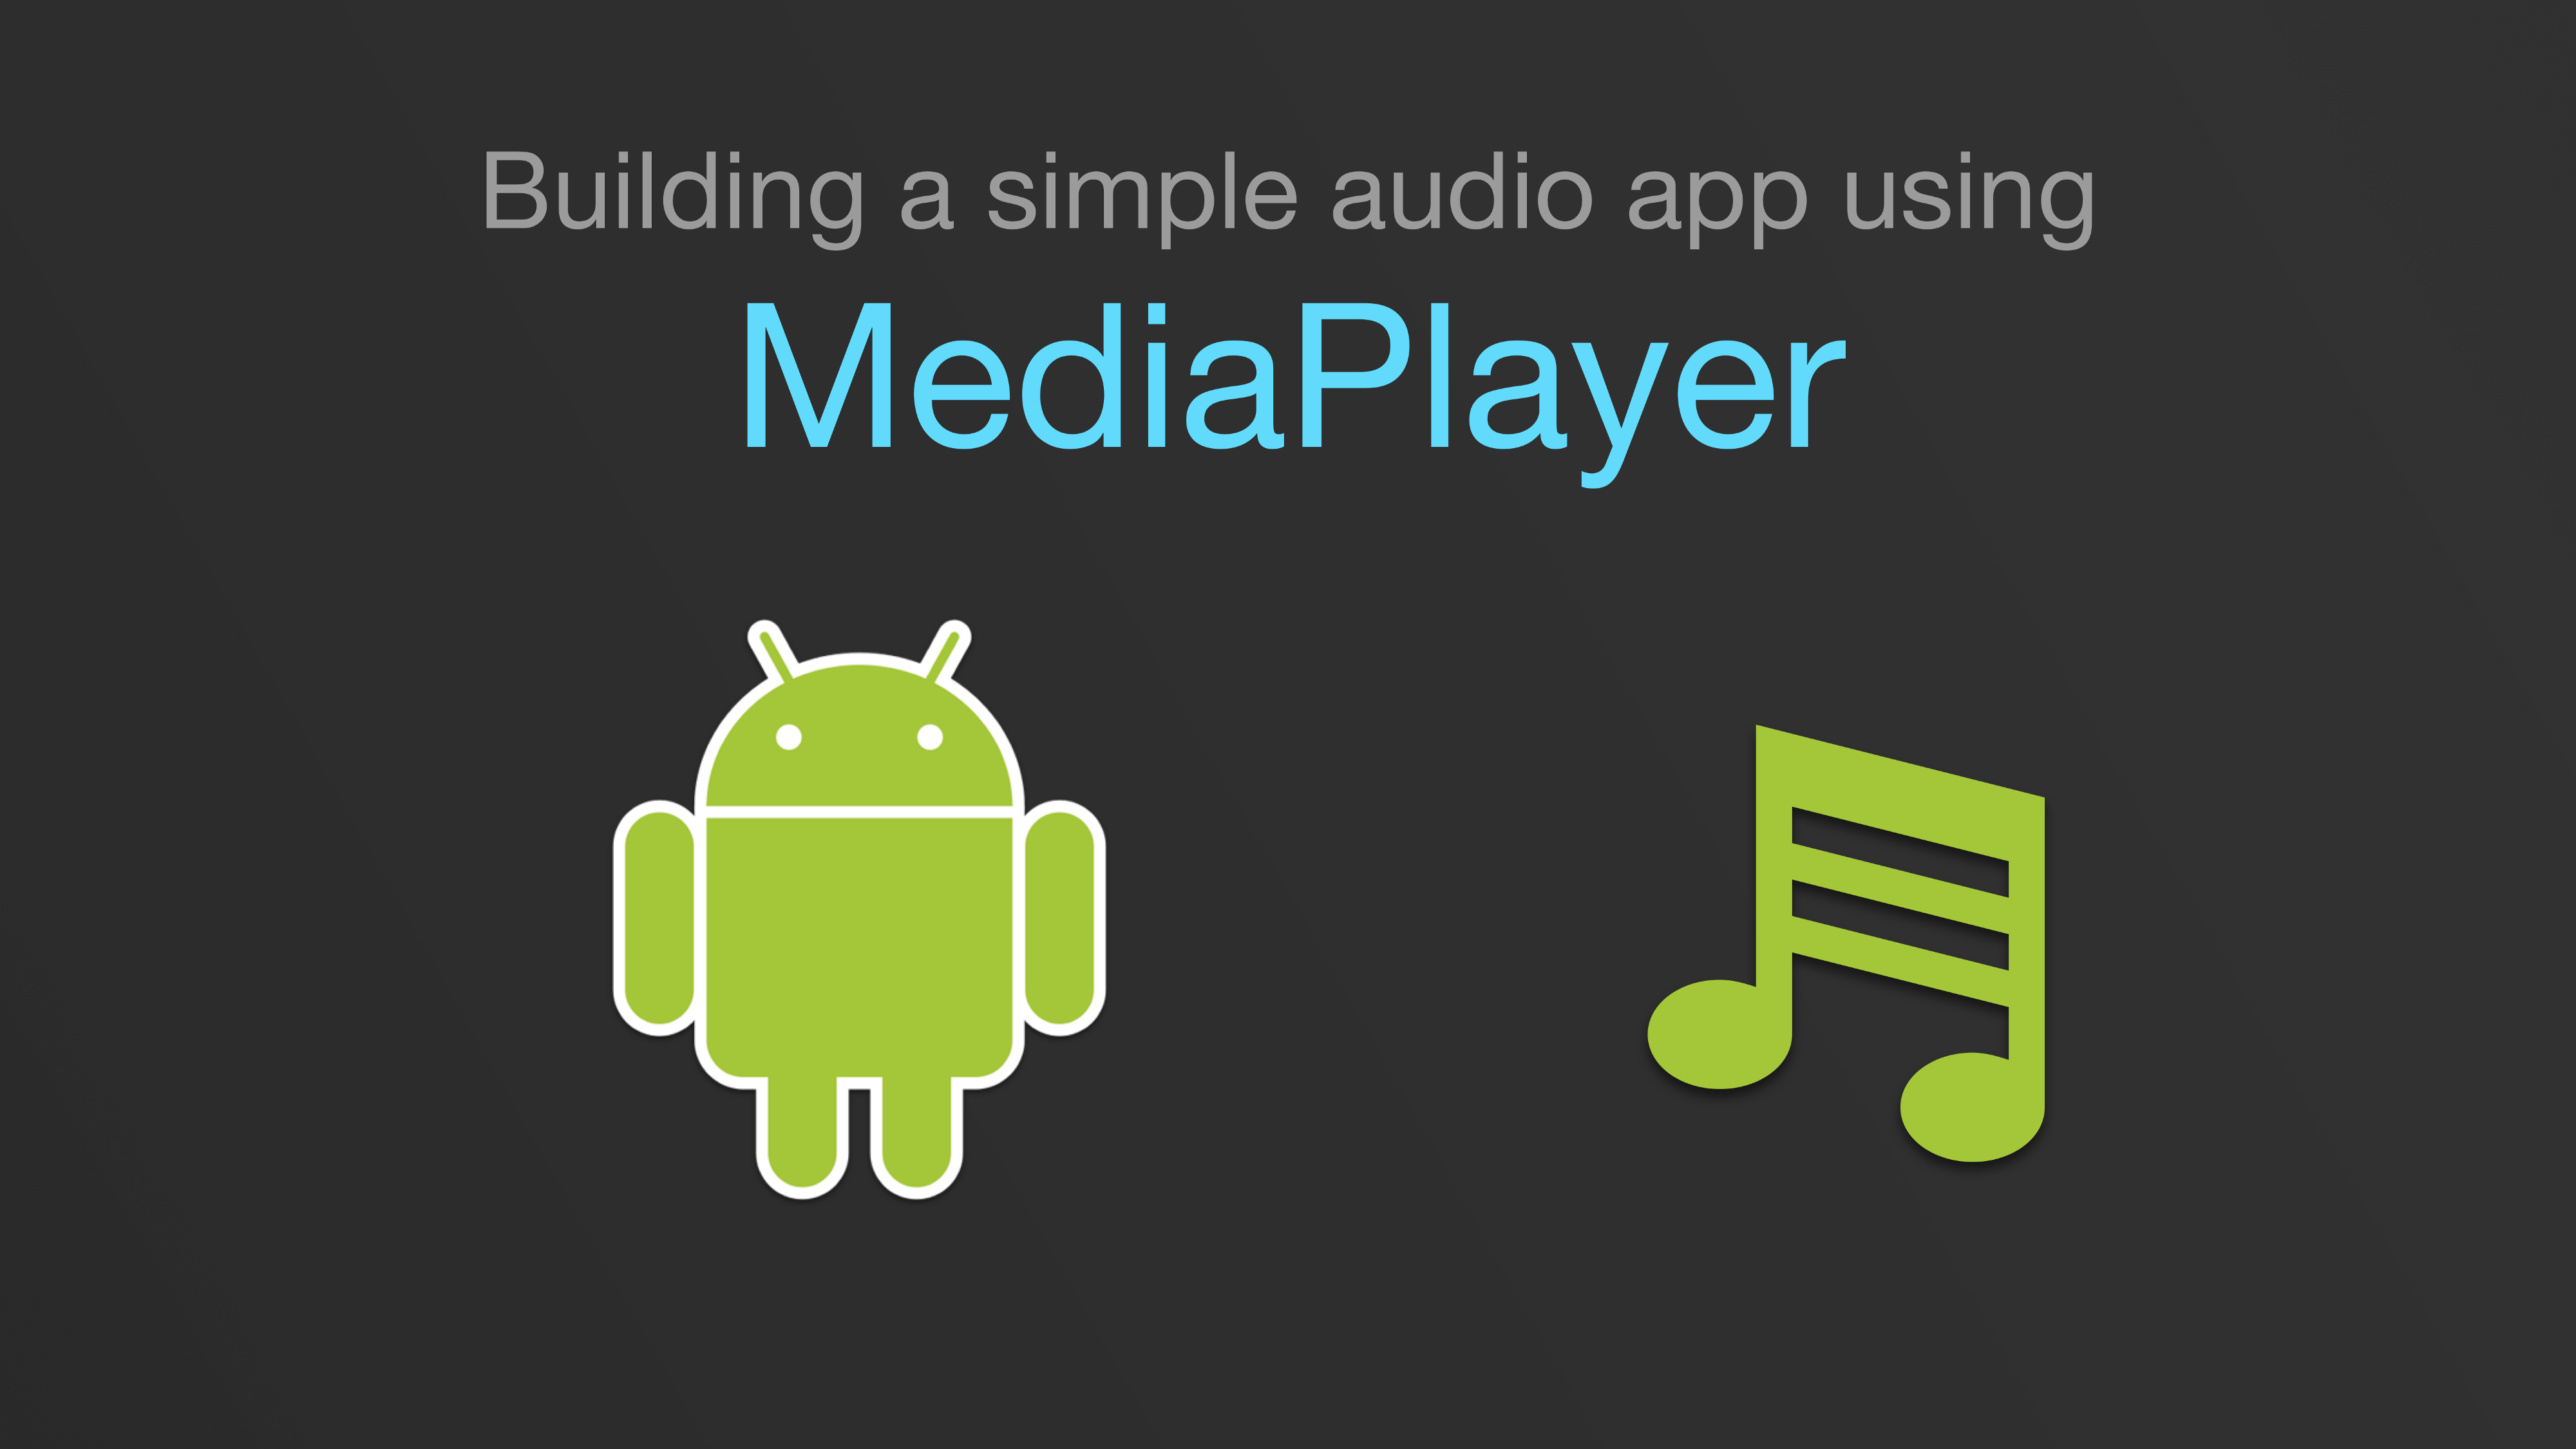 Building a simple audio app in Android (Part 3/3) - Android